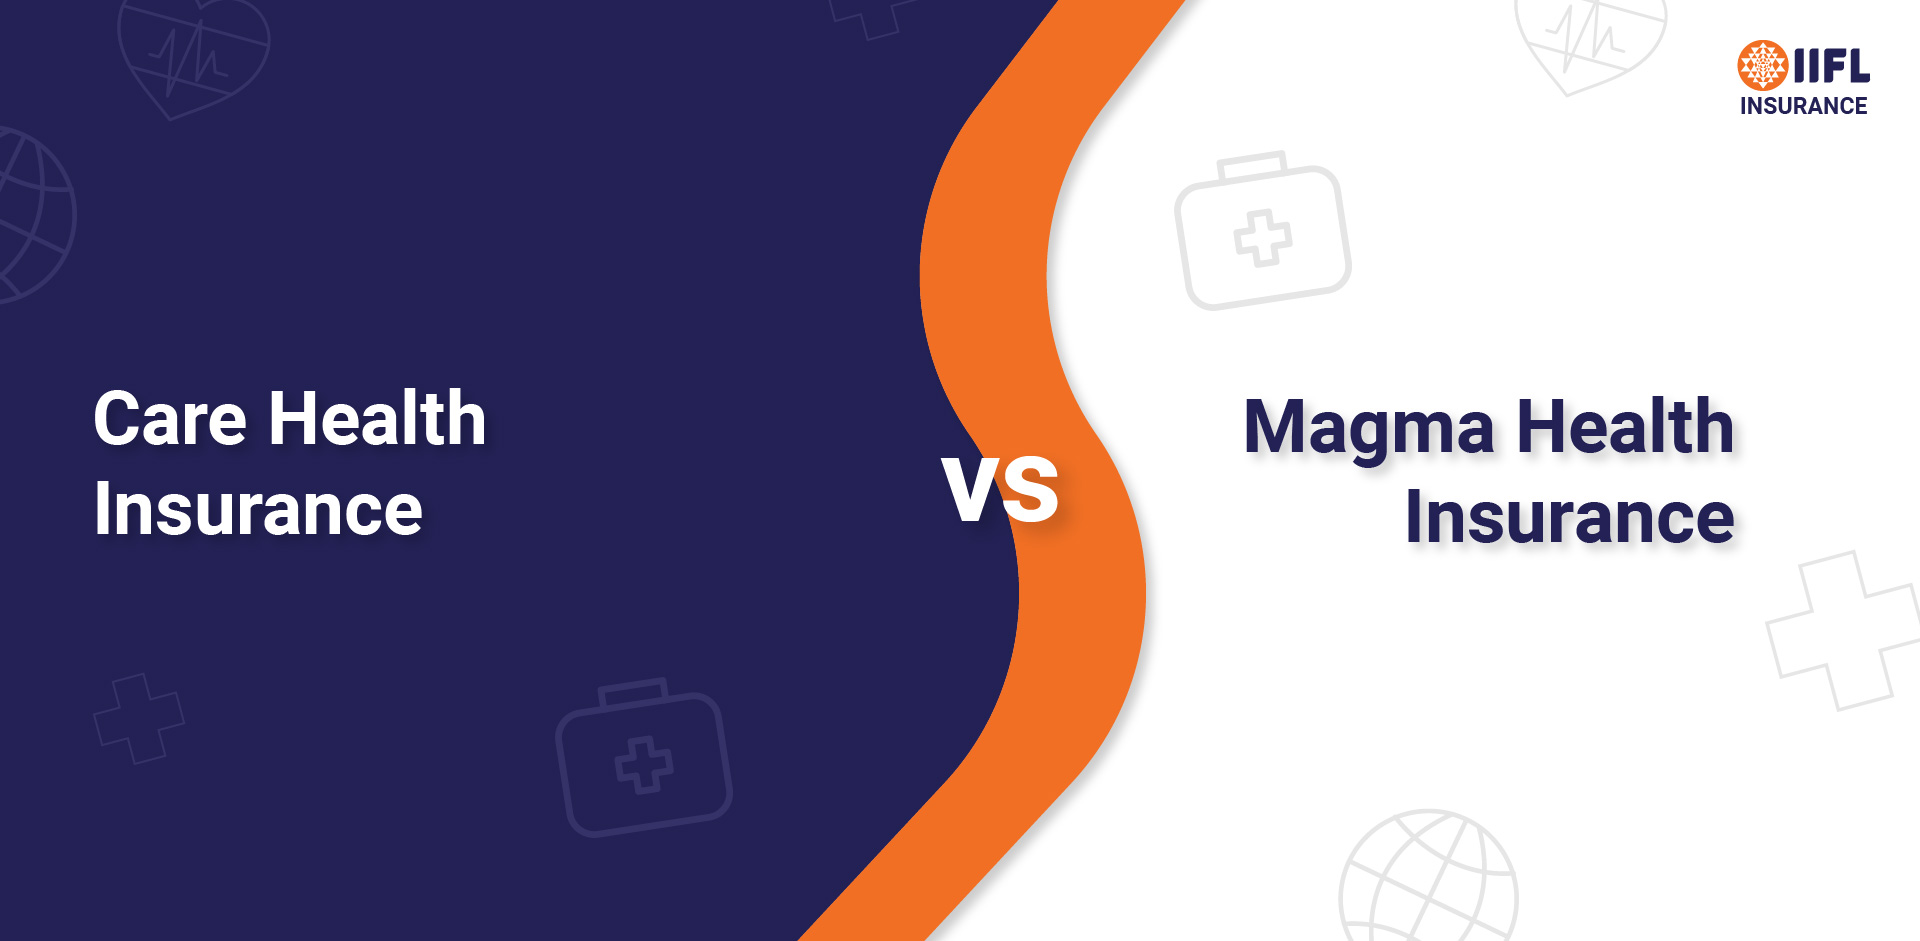 care health insurance vs magma health insurance